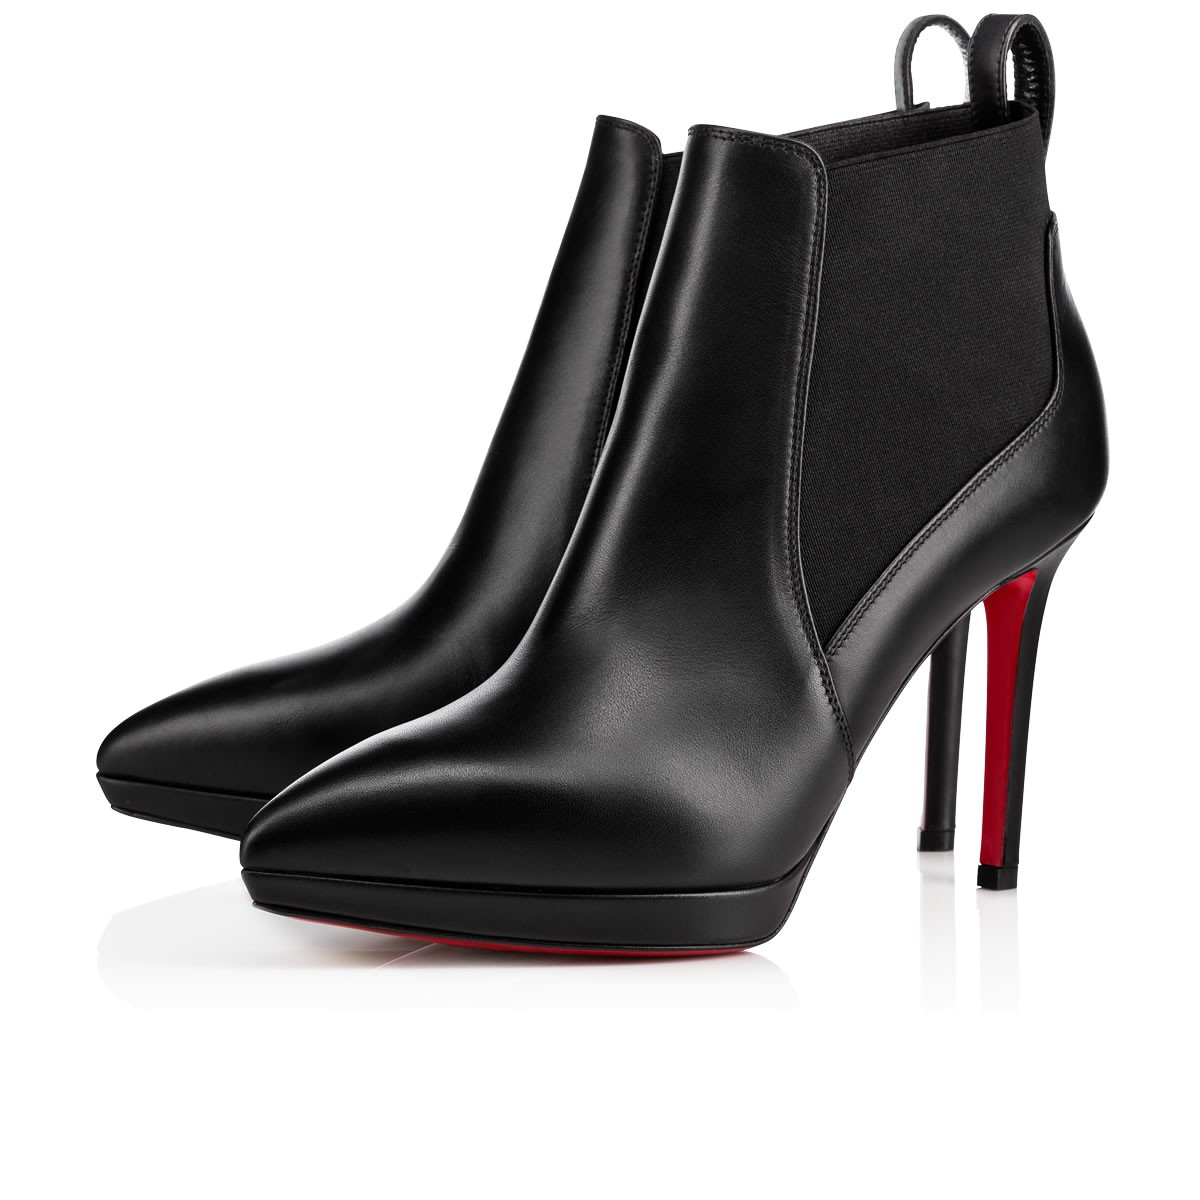 83cc38f91806 Crochinetta 100 Black Leather - Women Shoes - Christian Louboutin